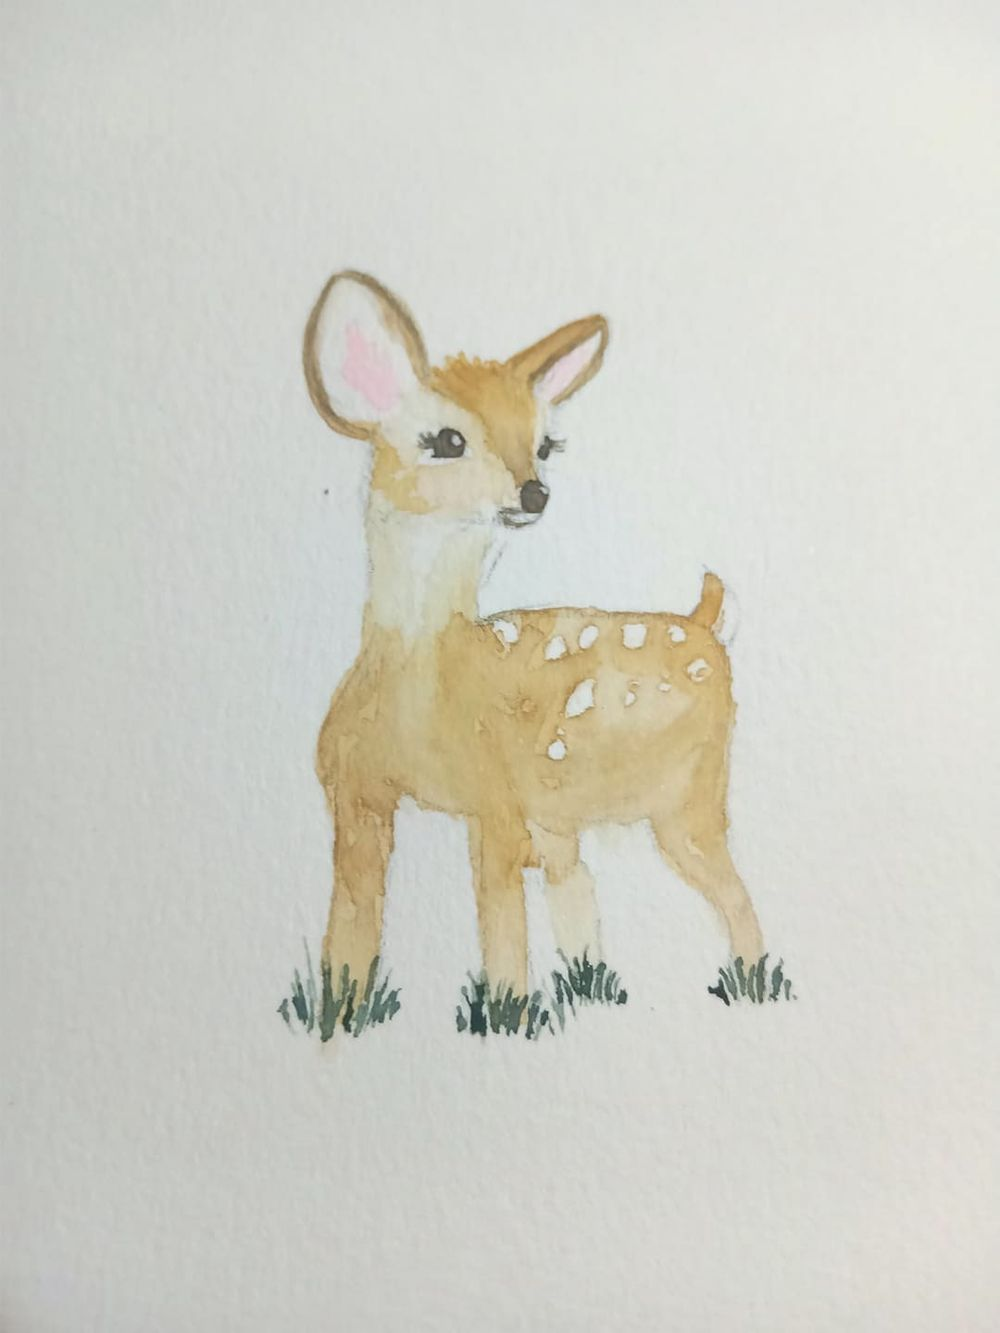 baby animals - image 2 - student project